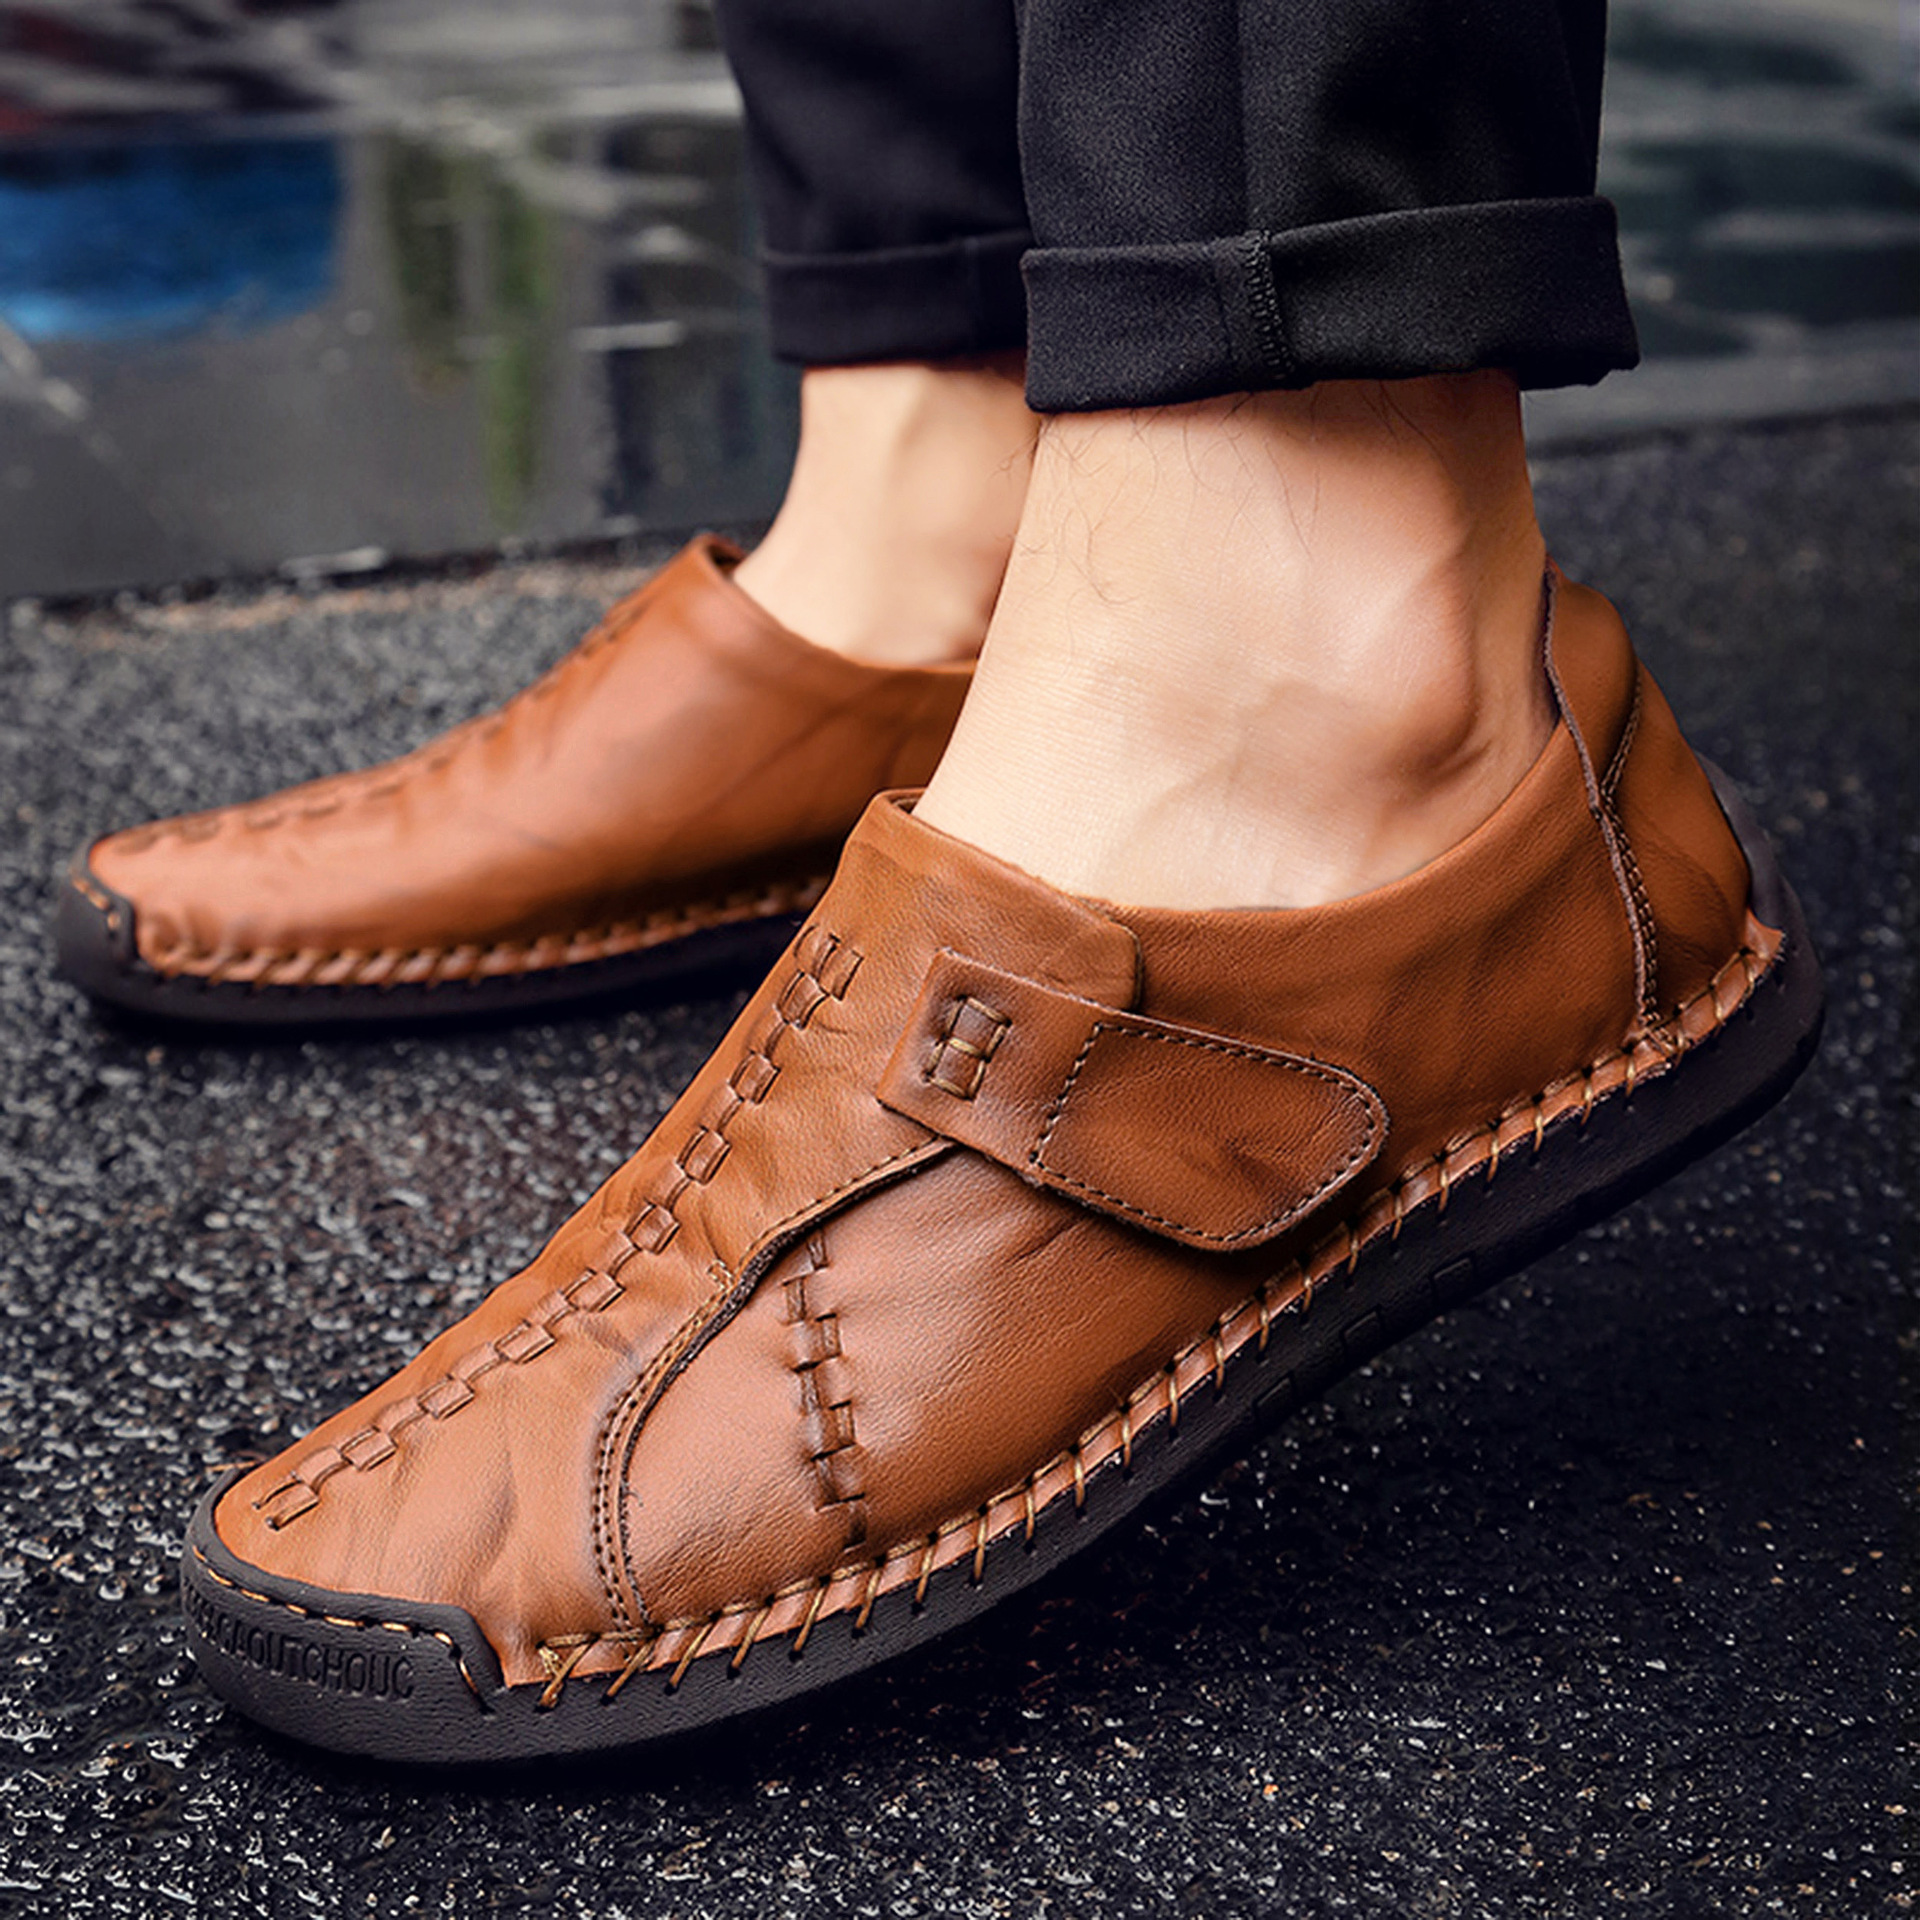 2019 Doug En Occasionnels Hommes À noir Cuir Nouveau yellow Main Conduite Split De brown Red Brown Mocassin Haute Grande Printemps Mode Size2 Chaussures La Qualité AAqrO